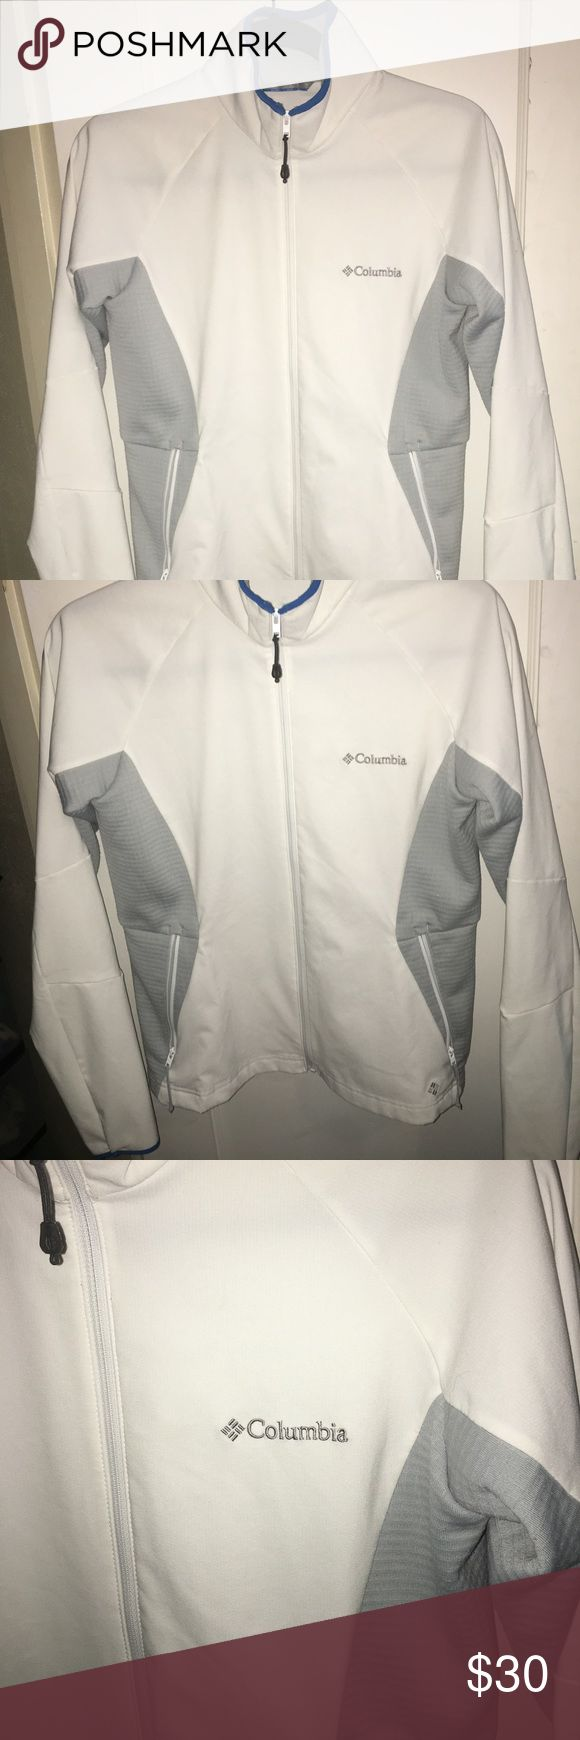 Columbia Omni-Wick Light Zip Up NWOT. Women's Columbia White Omni-Wick Light Zip Up.  Bought in Australia 🇦🇺  Never worn. ☺️ Perfect on a cool breezy day! 🍂💨⛅️  ✨Size: Small   Thanks for stopping by! 💜✌🏼 Columbia Tops Sweatshirts & Hoodies